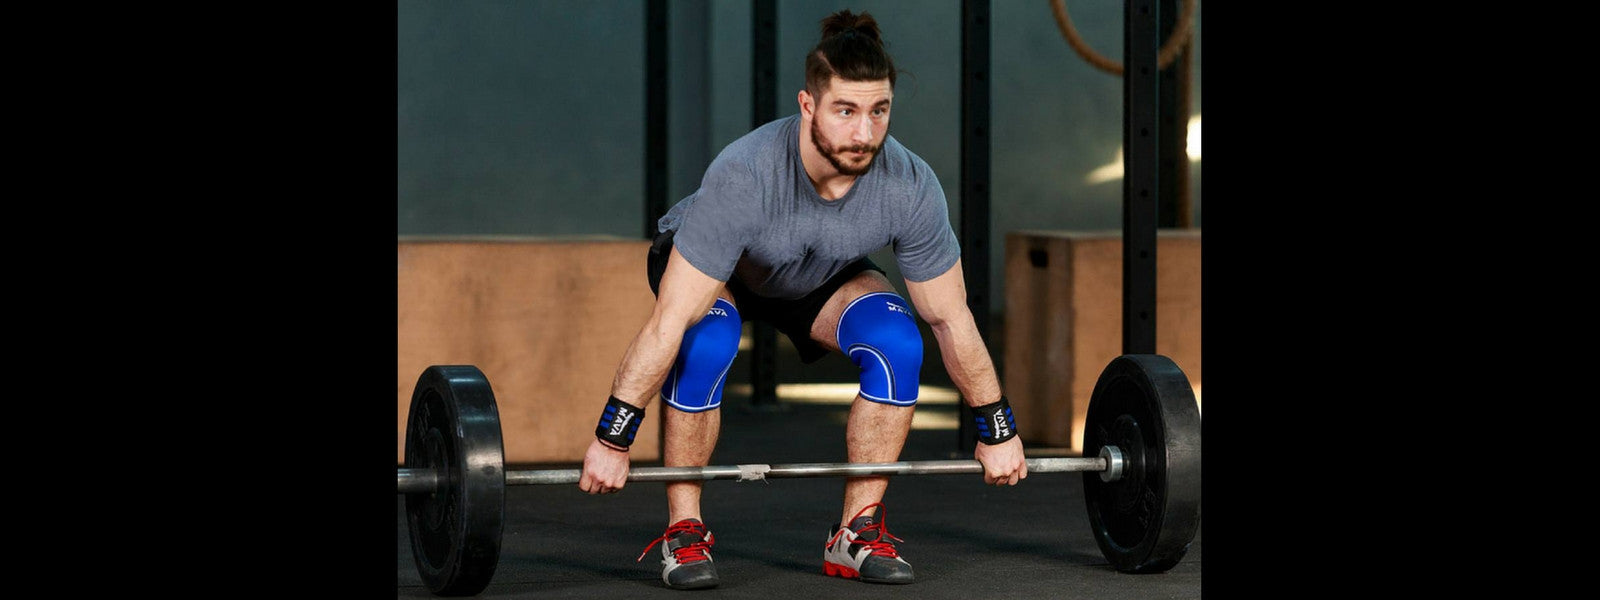 DEADLIFTS – BACK OR LEG DAY?